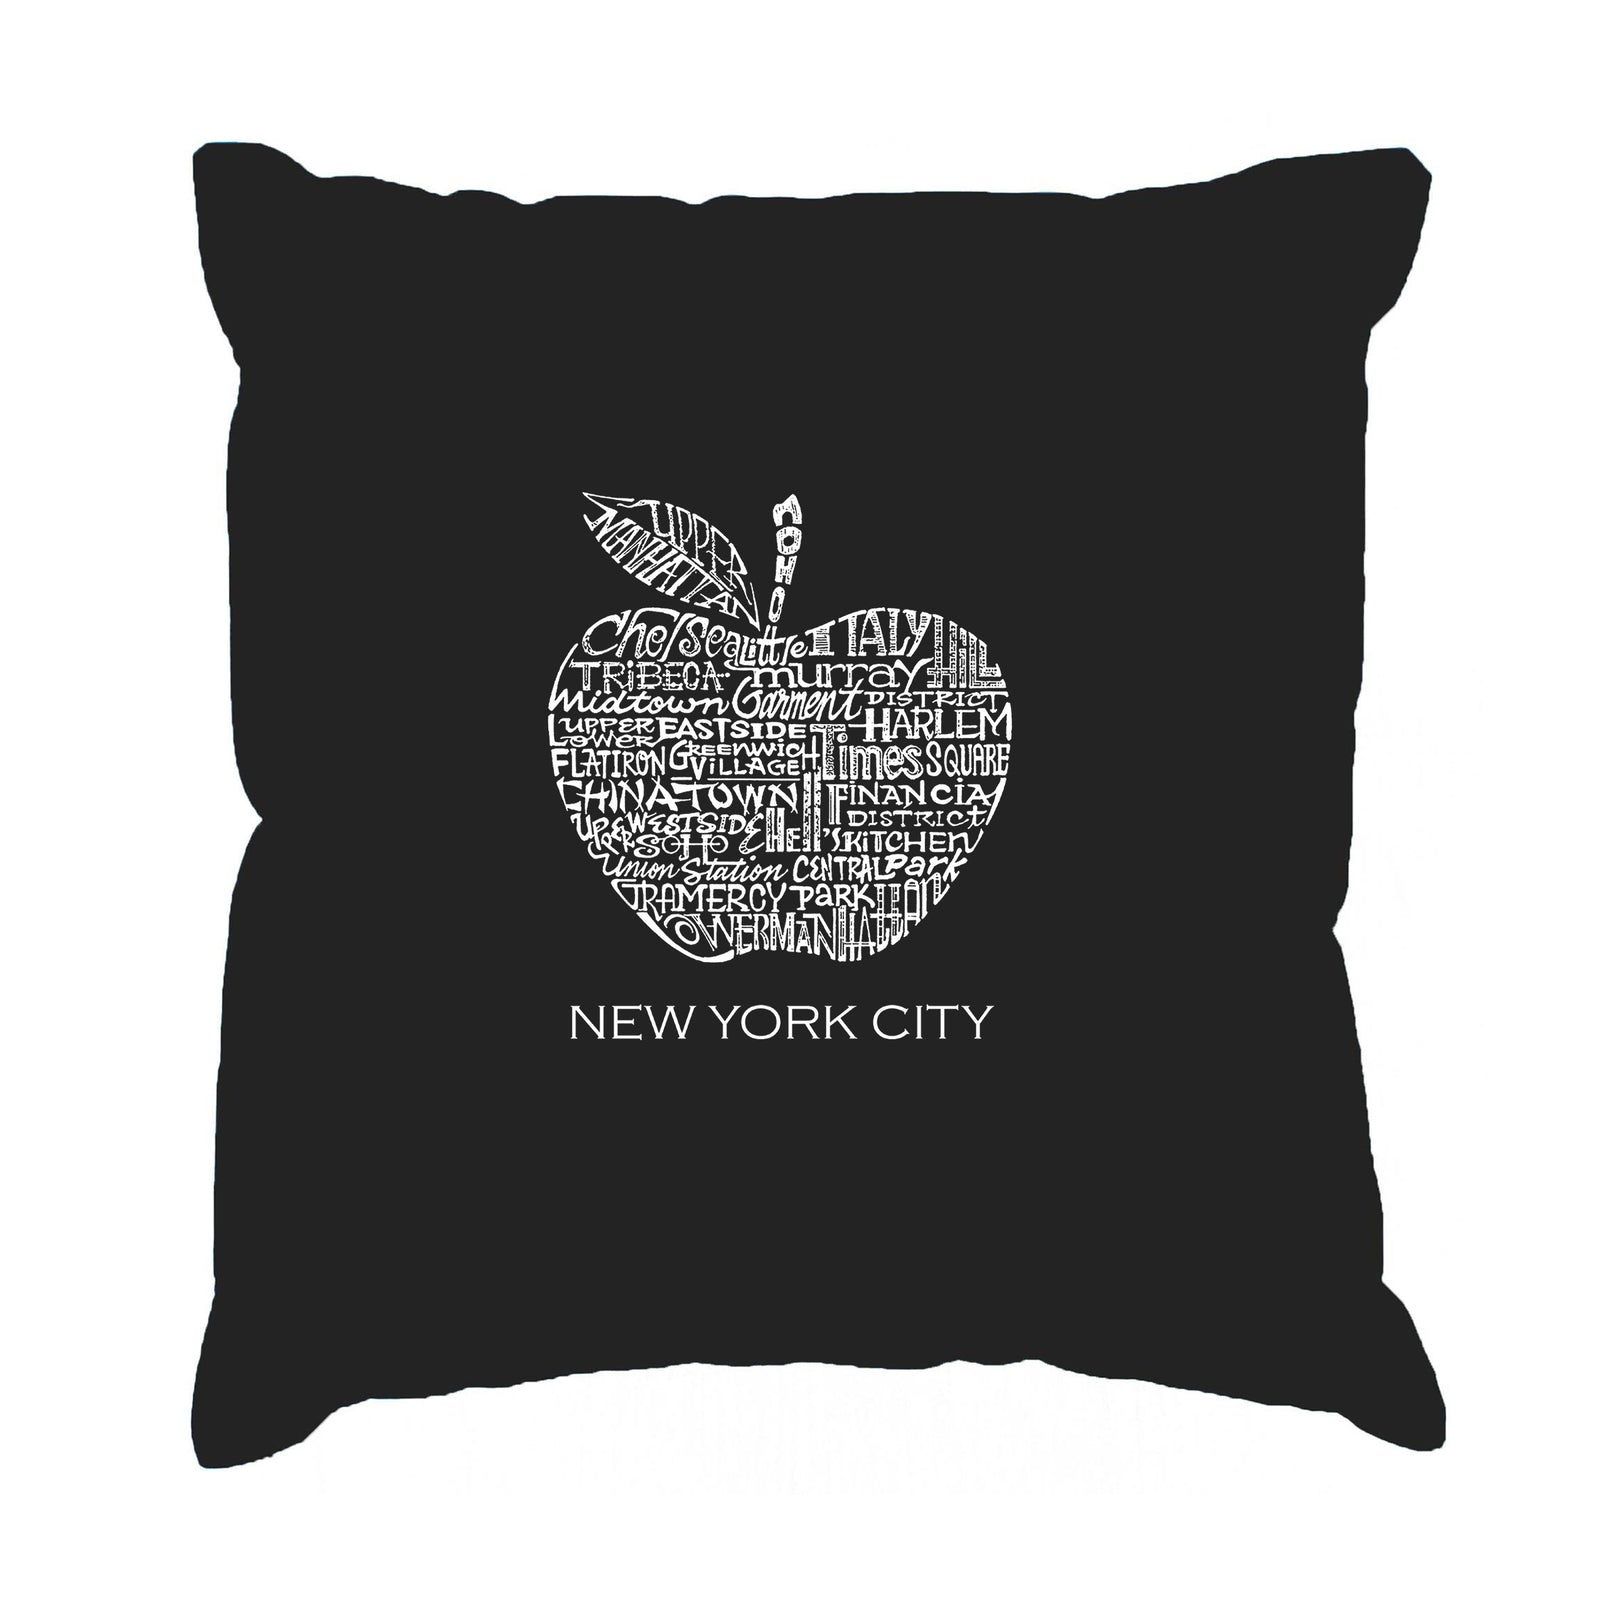 Throw Pillow Cover - Word Art - Neighborhoods in NYC